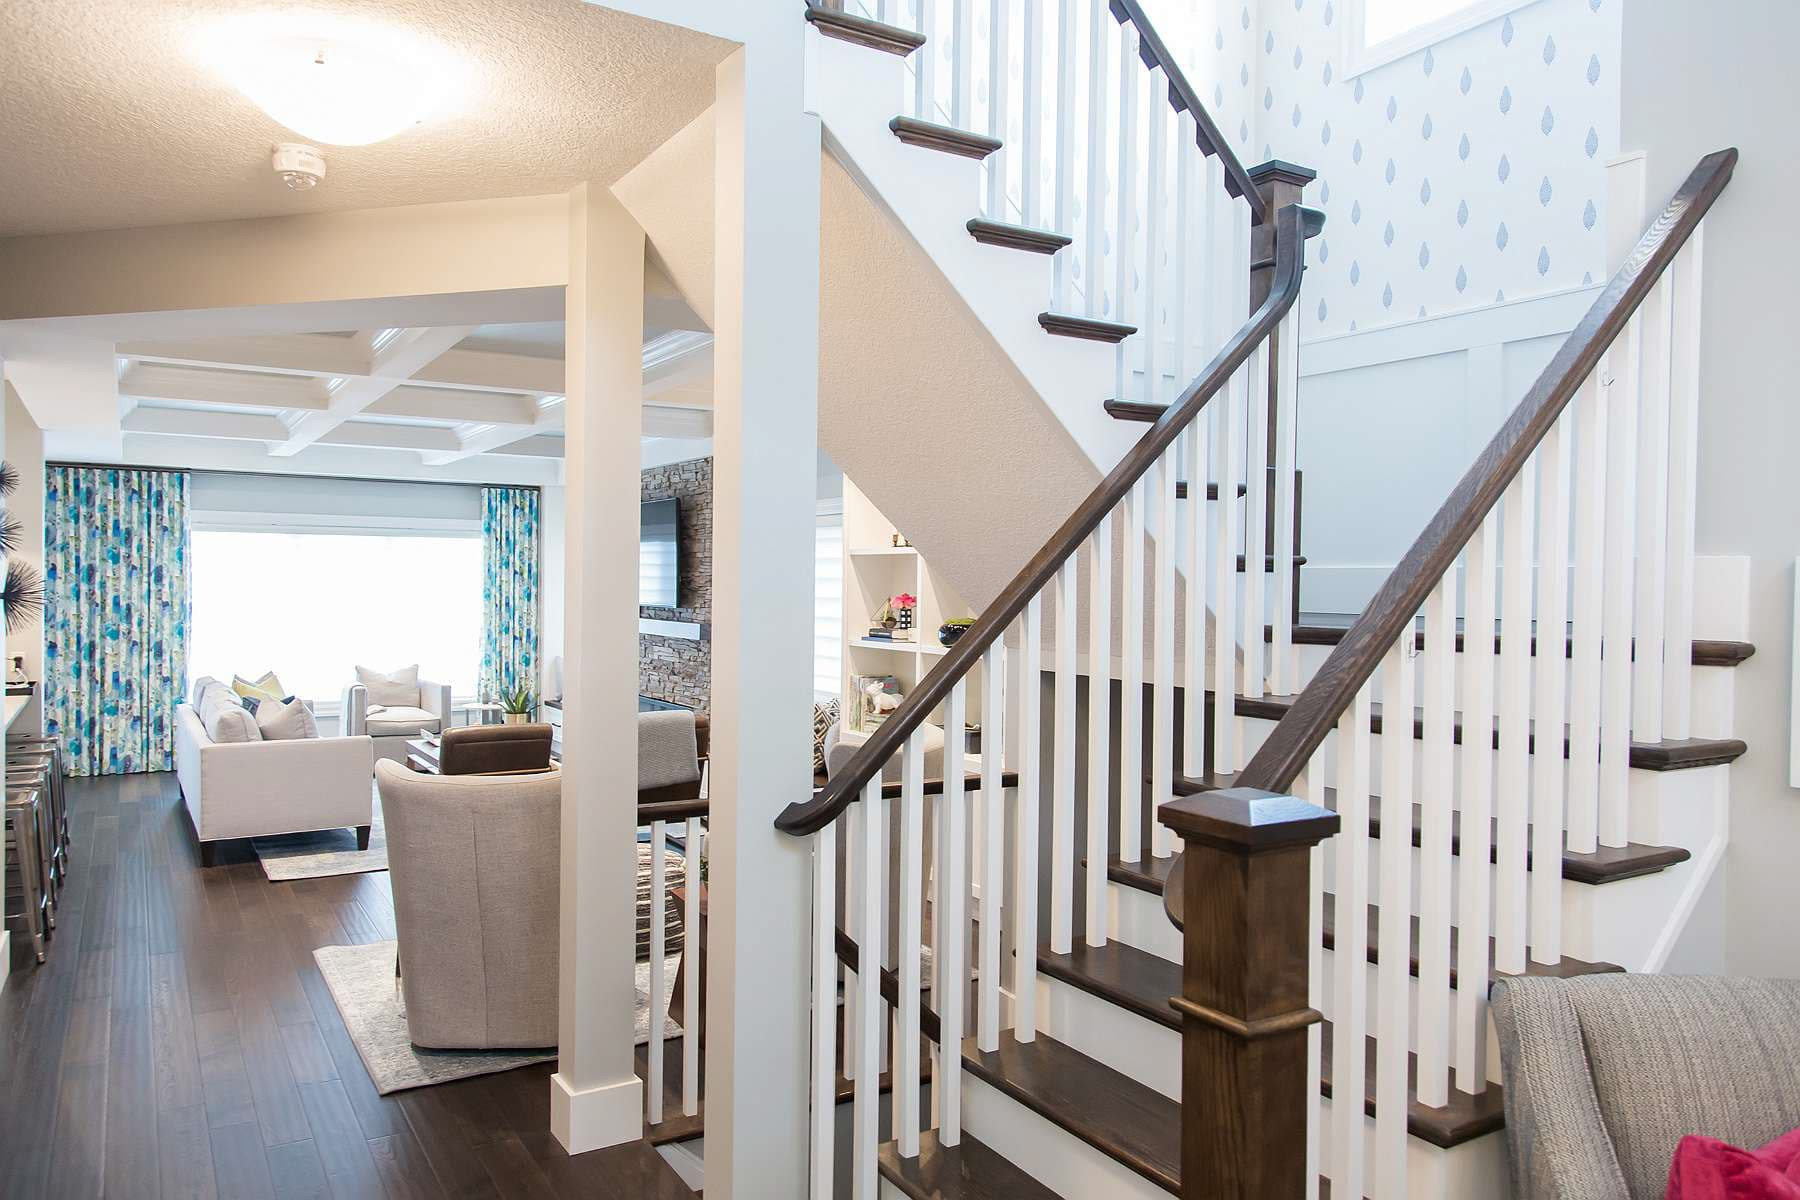 Staircase featuring painted white spindle and risers and wood stained handrail, newal and tread opening into family room with coffered ceiling